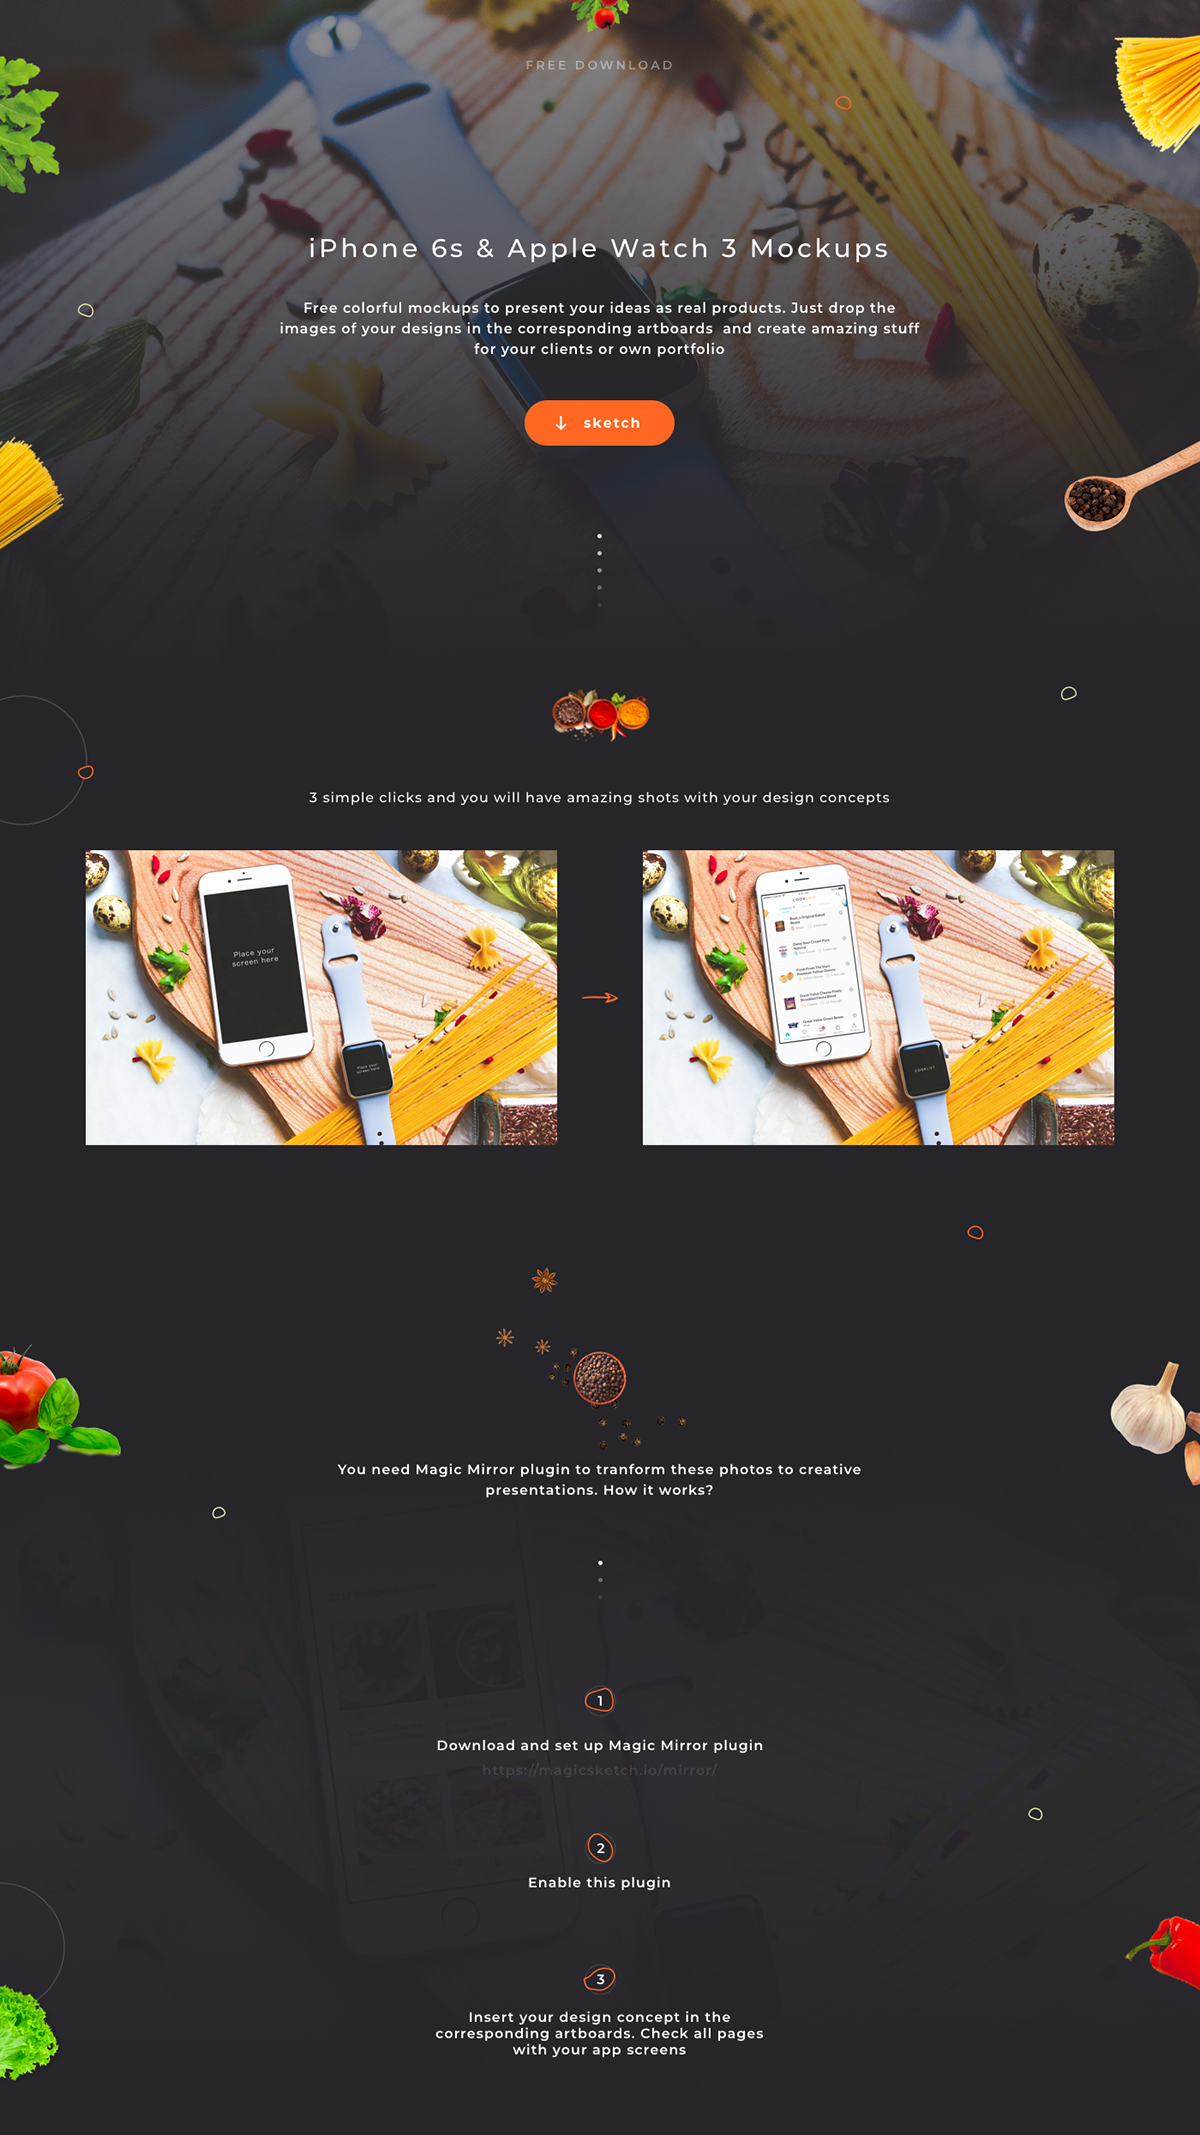 Free iPhone 6s & Apple Watch 3 Mockups - Sketch on Student Show